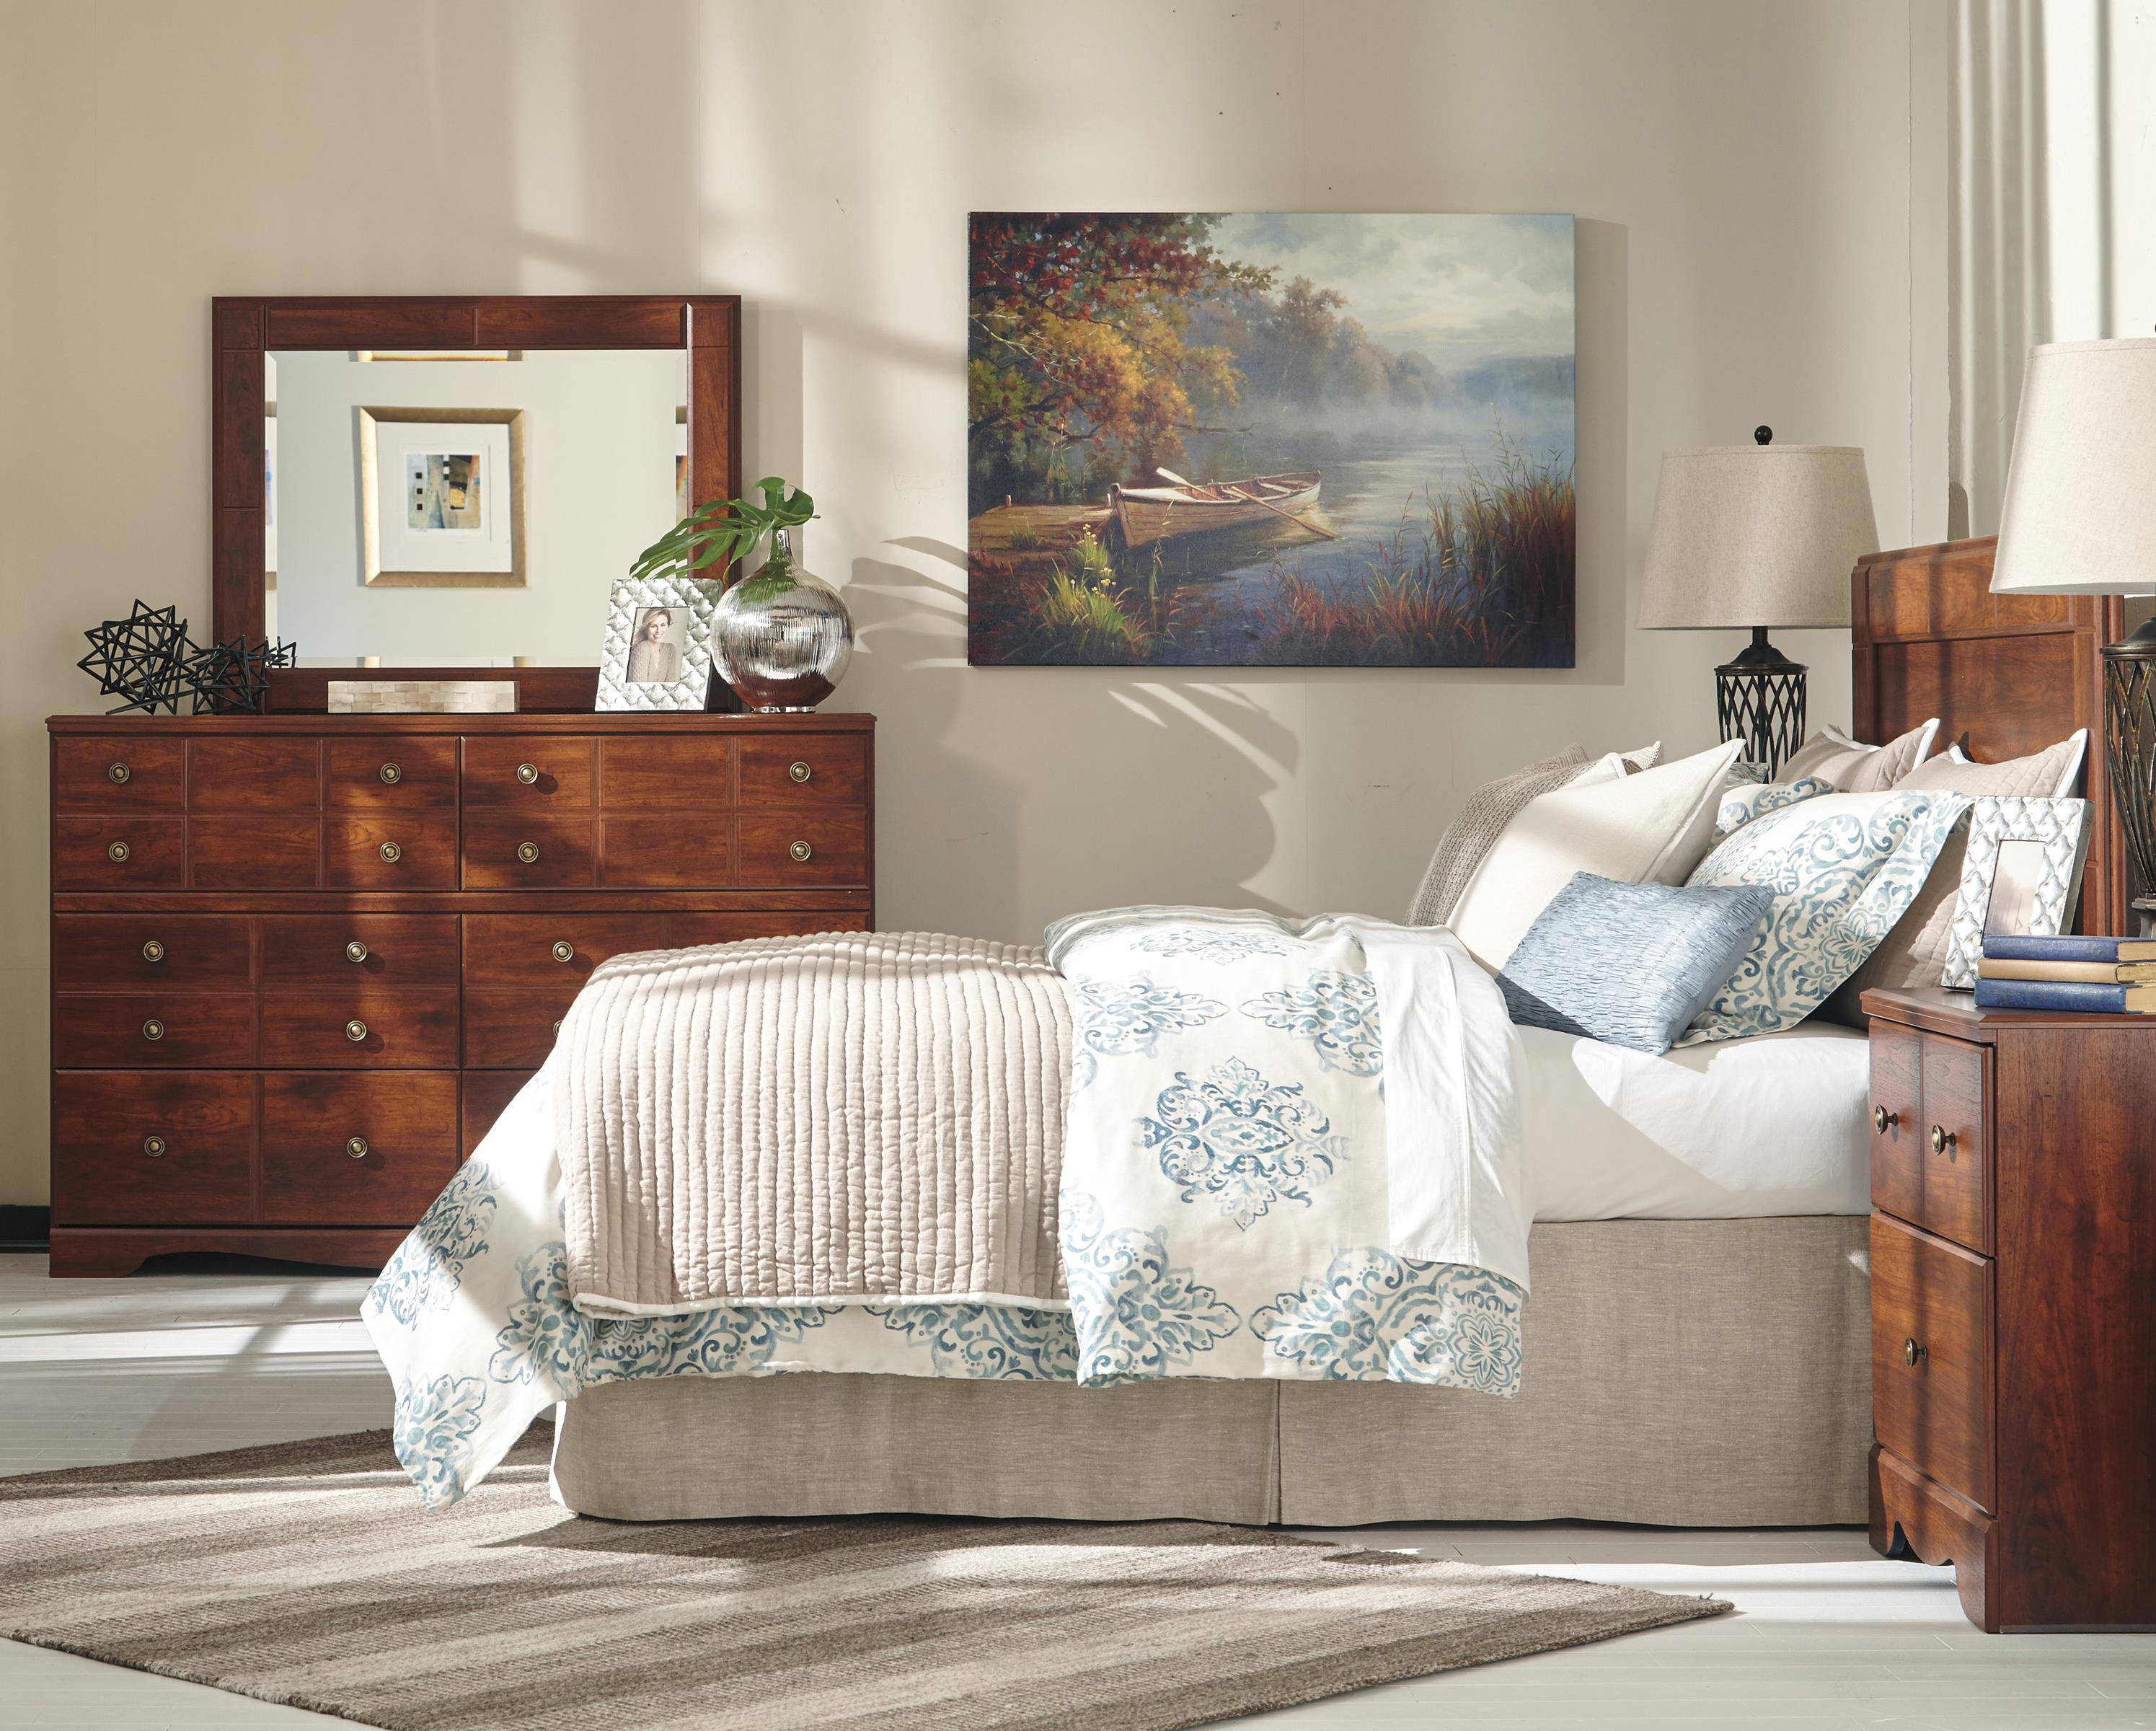 Signature Design by Ashley Brittberg Queen/Full Bedroom Group - Item Number: B265 QF Bedroom Group 1